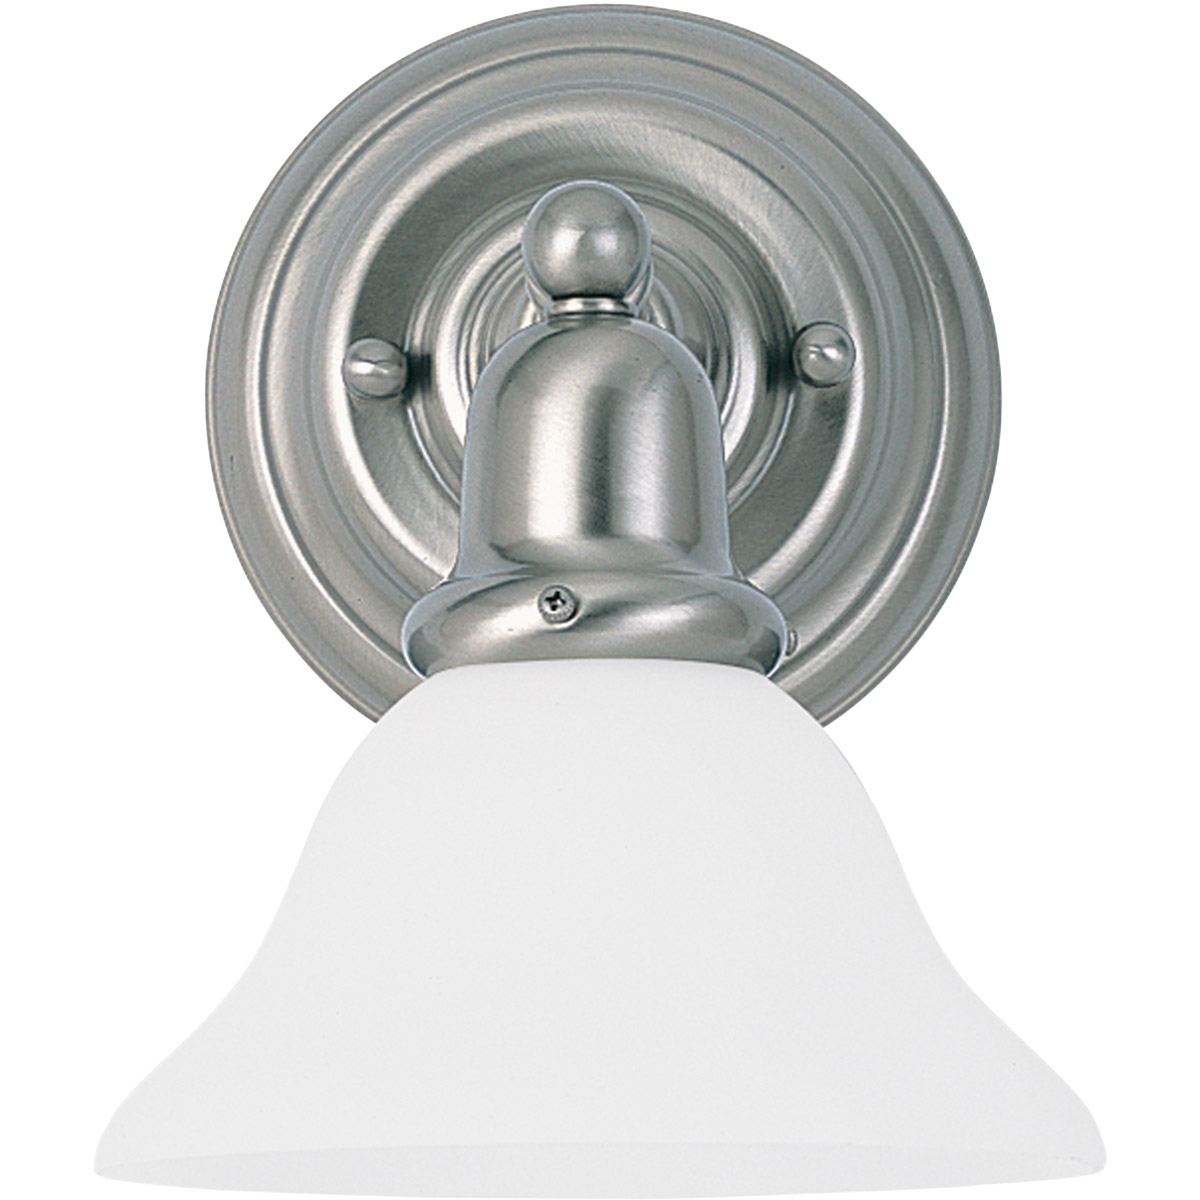 Sea Gull Lighting Sussex 1 Light Bath Vanity in Brushed Nickel 44060-962 photo